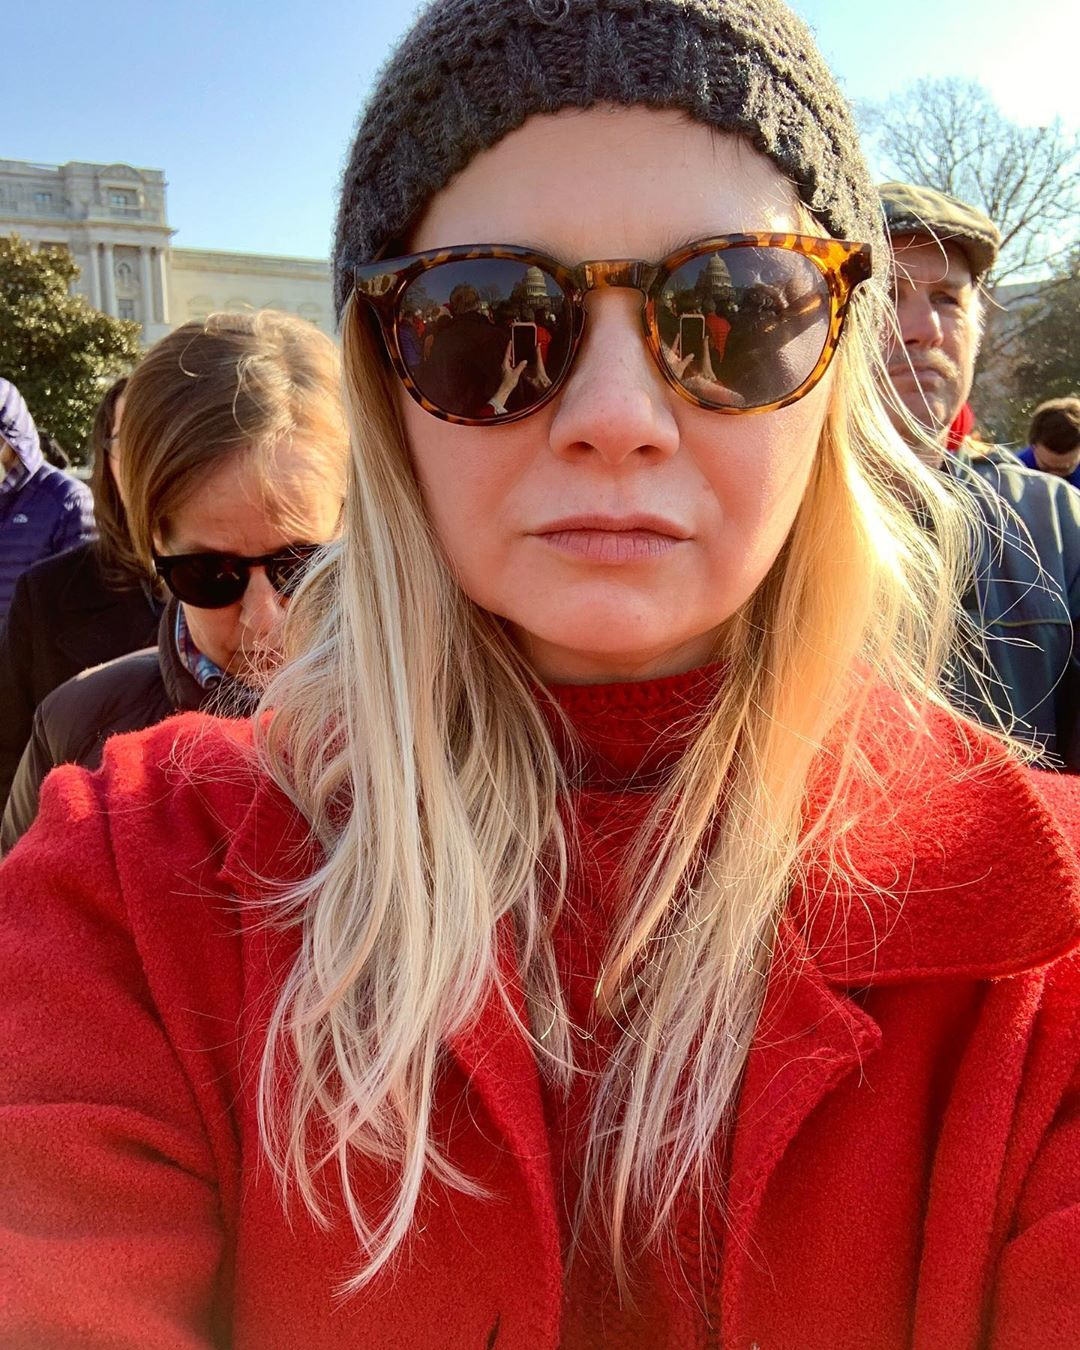 We proudly attended today's @firedrillfriday in solidarity with @gretathunberg & @janefonda and the other beautiful activists demanding climate justice. Dear friend @caseyrosewilson & lifelong hero @gloriasteinem spoke passionately about why this is a crisis and specific ways that we can help. Every Friday at 11am meets on the SE lawn of the capital building to educate, activate, and demand climate justice. Join any Friday to be a part of this powerful and critical movement. Many brave activists like Casey & Gloria risked arrest, which I applaud and proudly support. But you can be a witness as I was if that's not a possibility for you. Attending @firedrillfriday is a wonderful way to be personally involved in this fight for Mother Earth. She needs us. Much respect to everyone involved. *More photos on @nasty.network